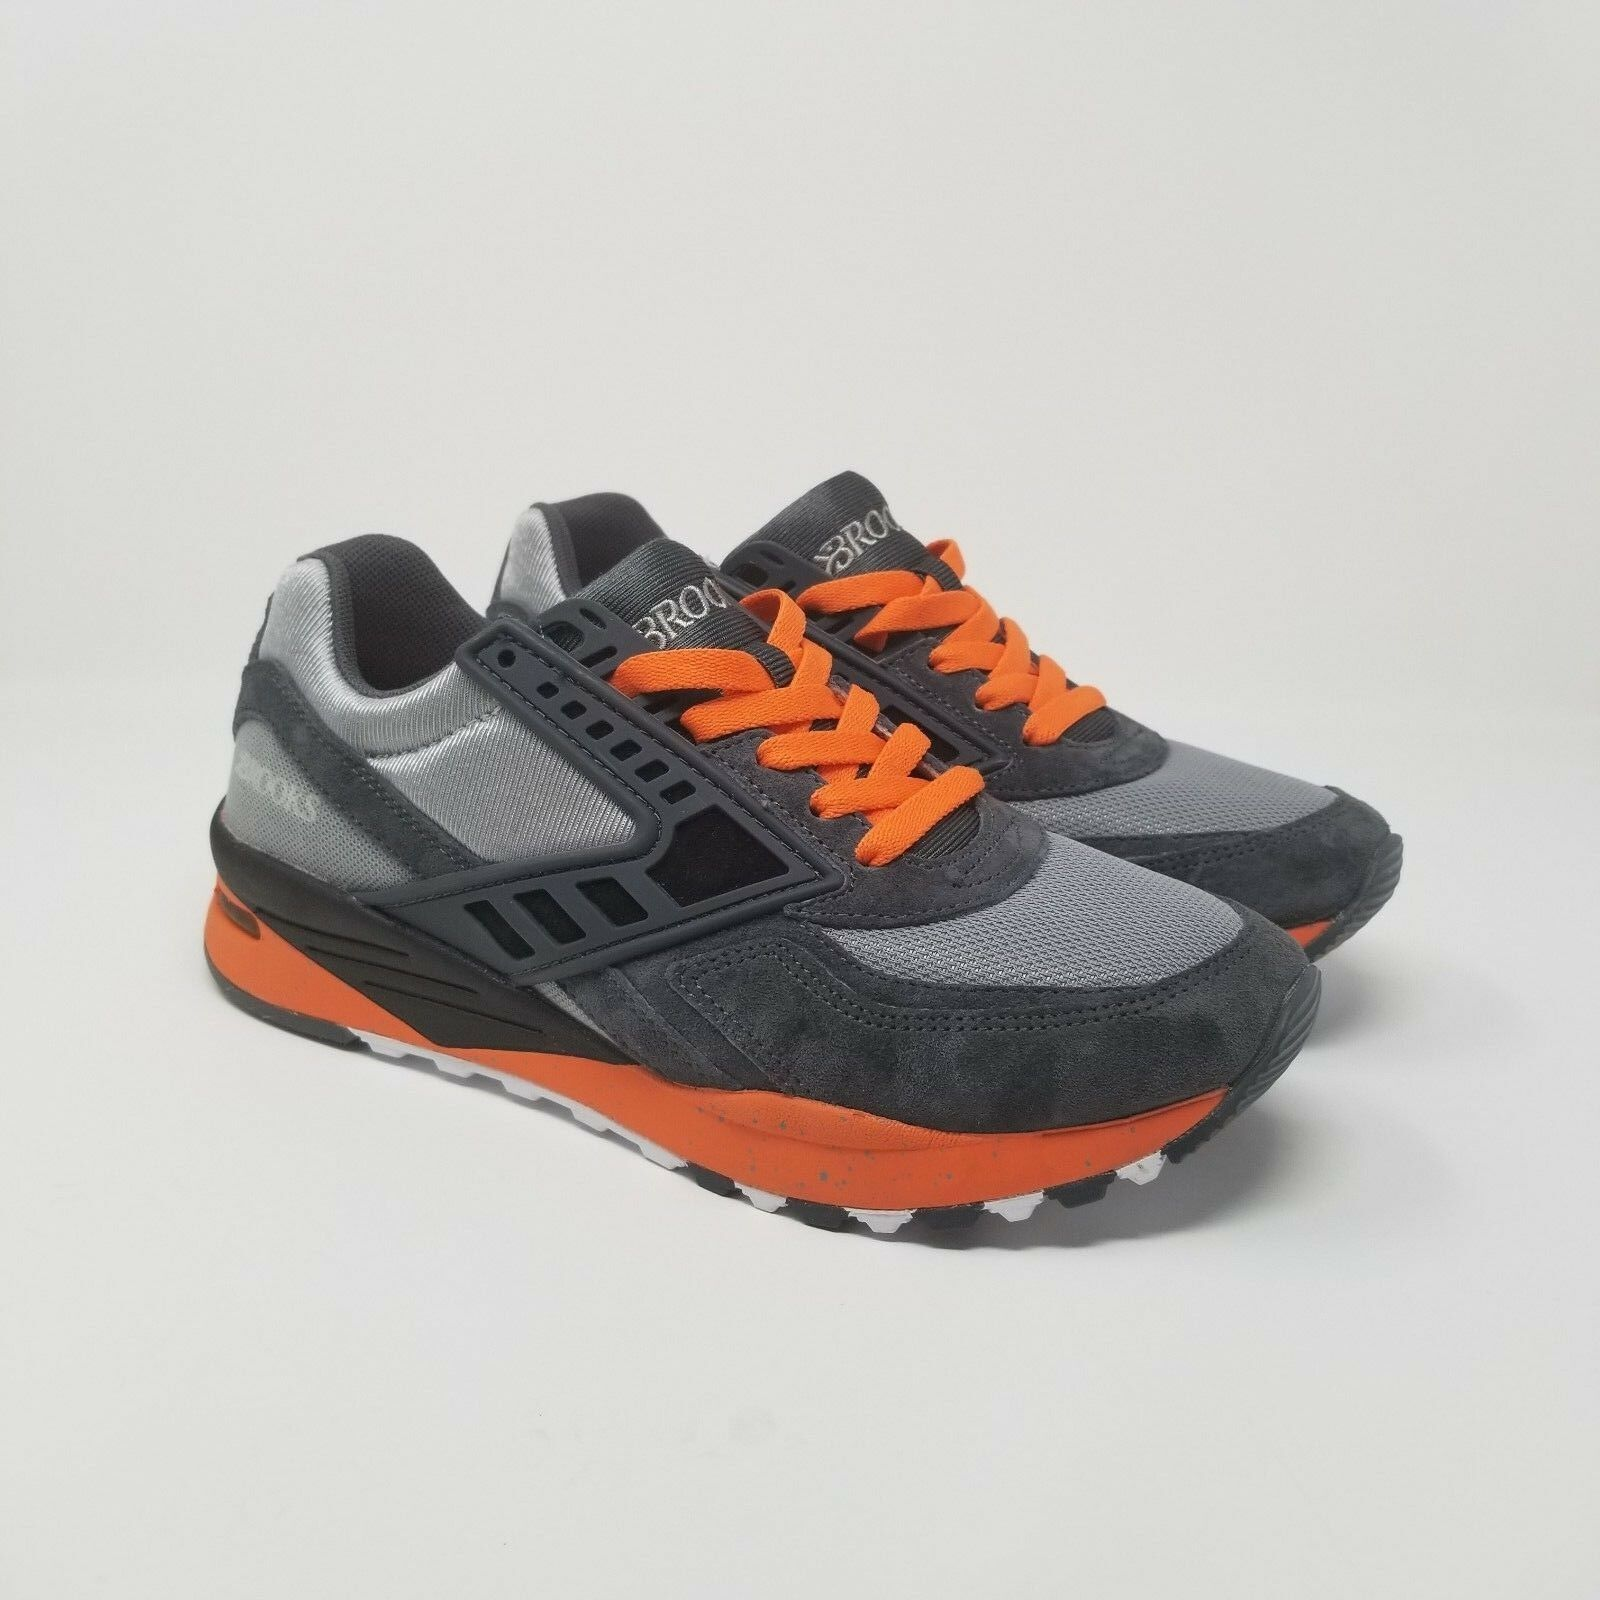 Brooks Heritage Regent  Uomo Running Orange Schuhes Größe 7.5 Grau Orange Running NEW 7a0b6d